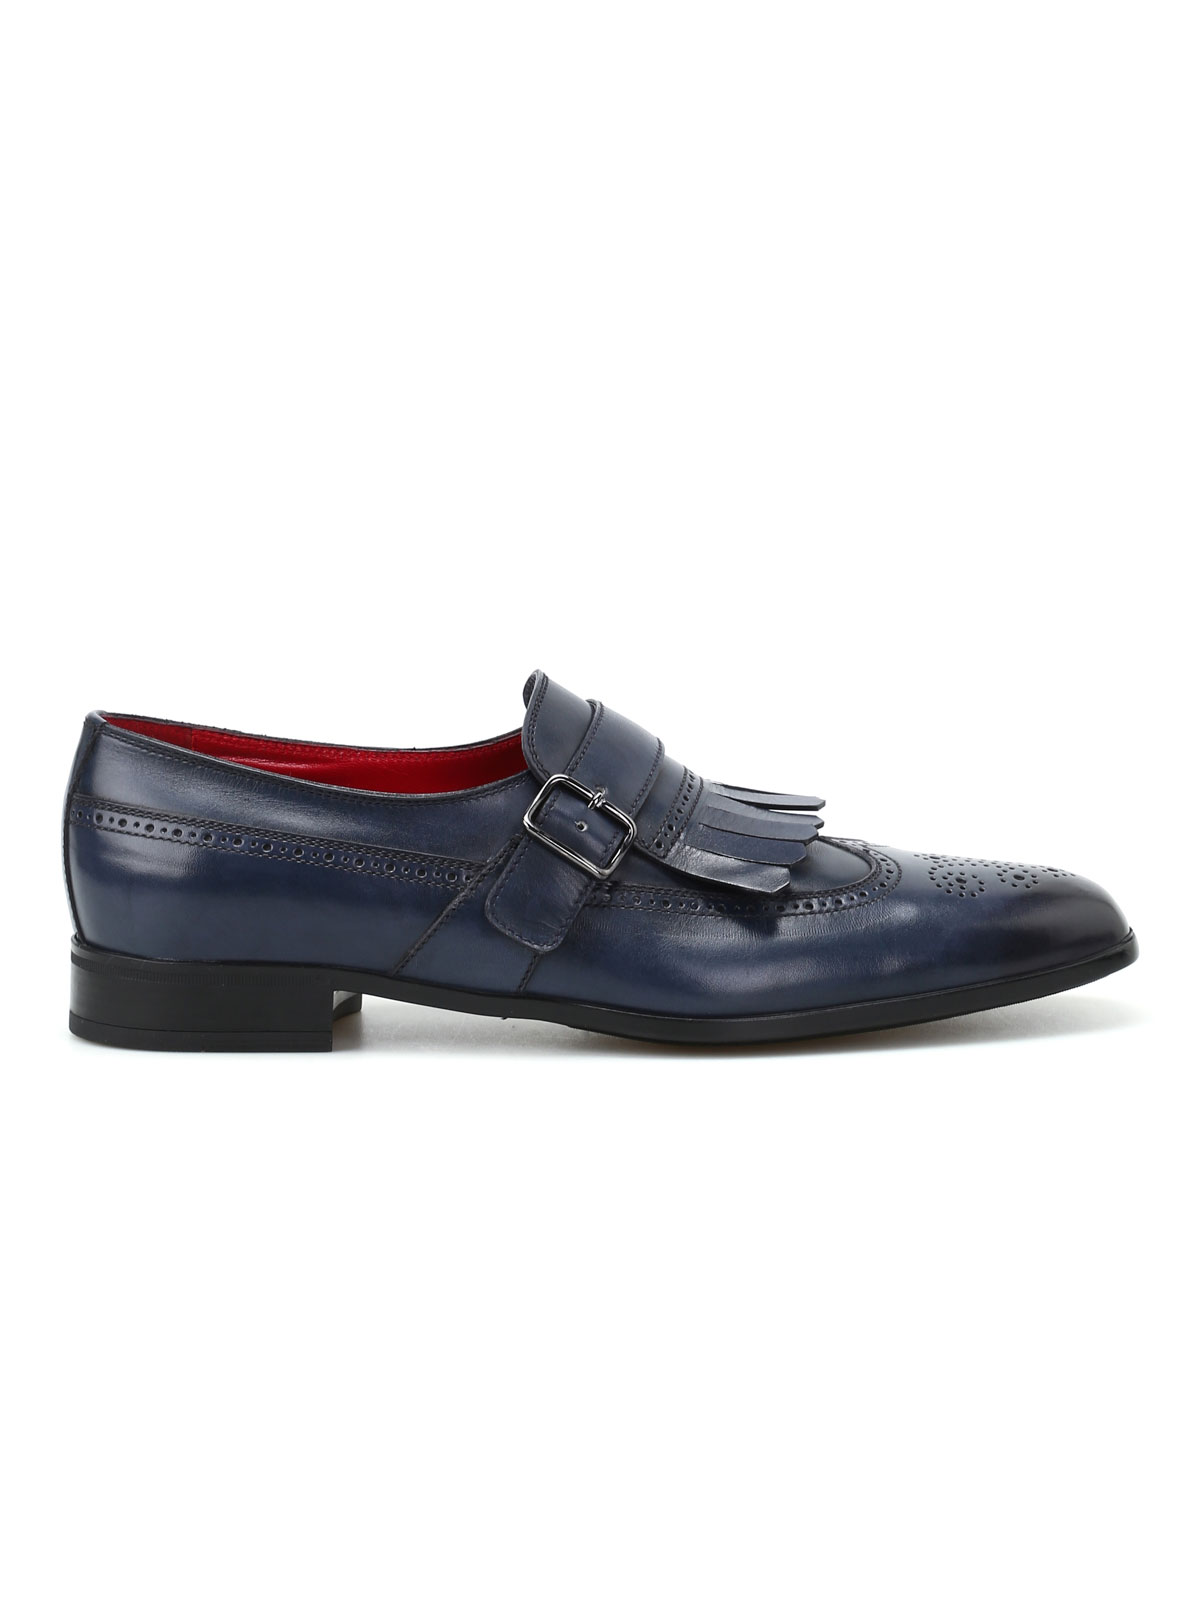 Immagine di BARRETT | FOOTWEAR Monk strap brogue blu in pelle